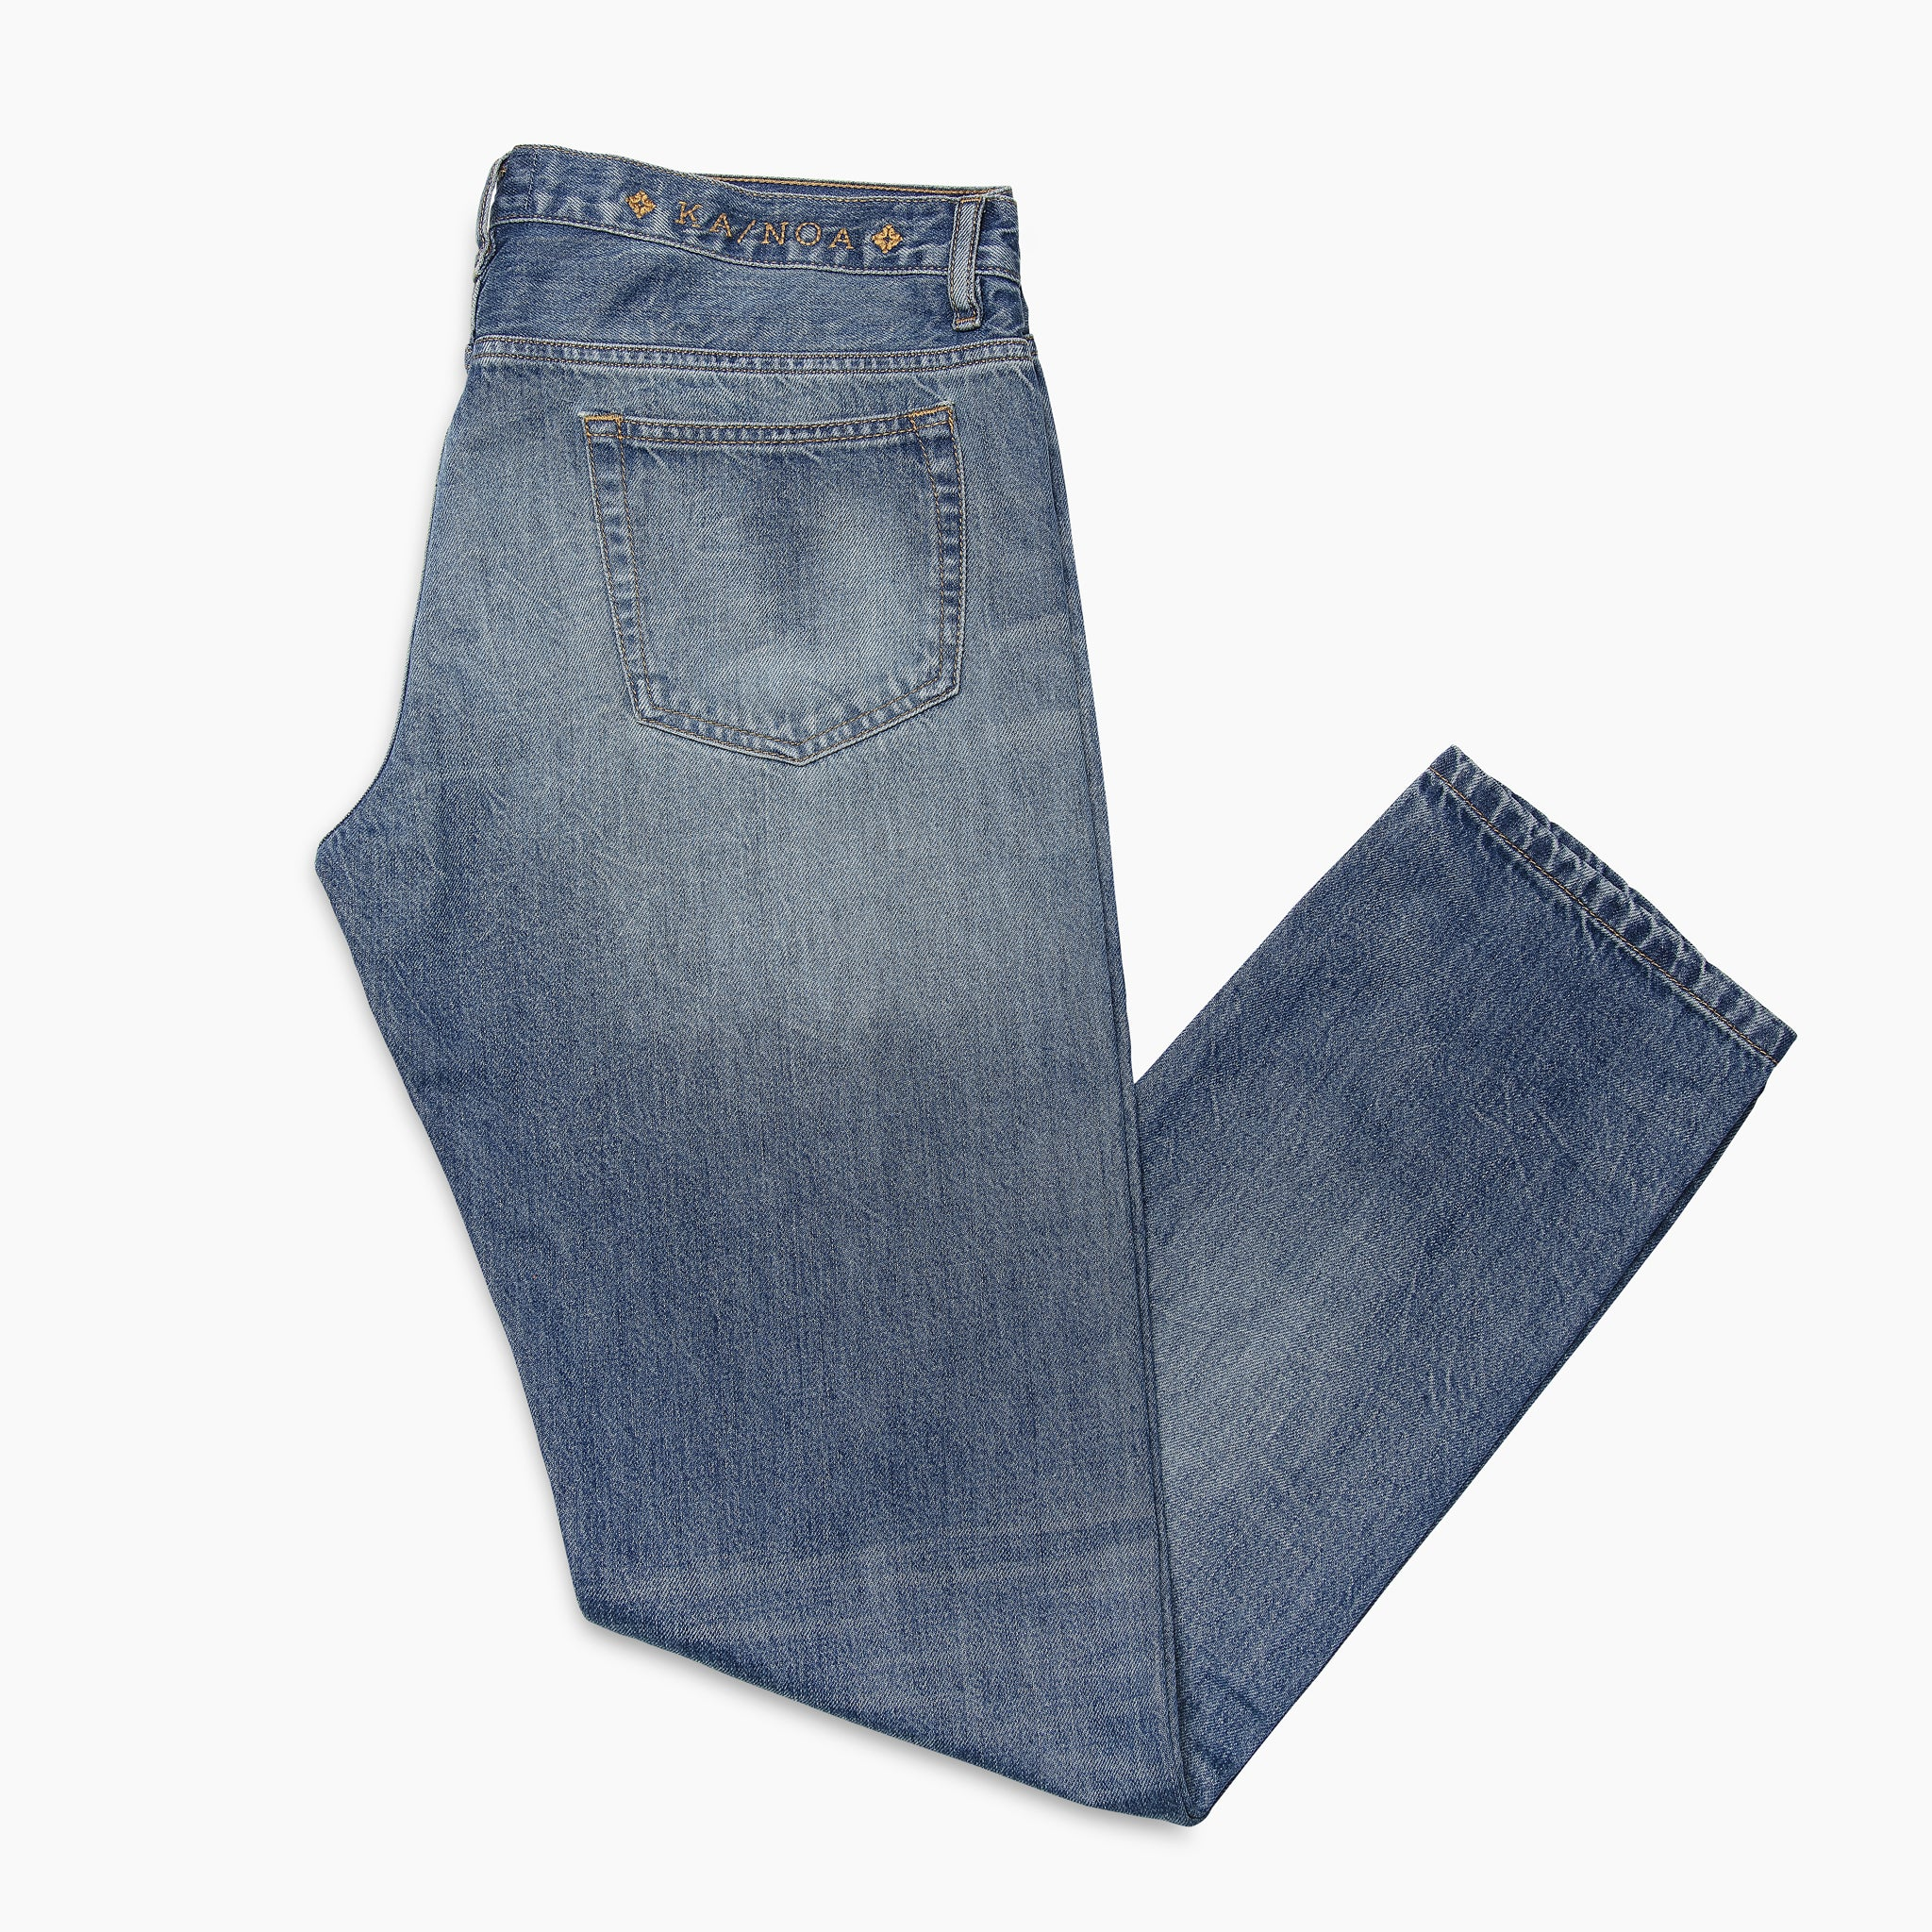 Legacy jeans in true denim (vintage blue)